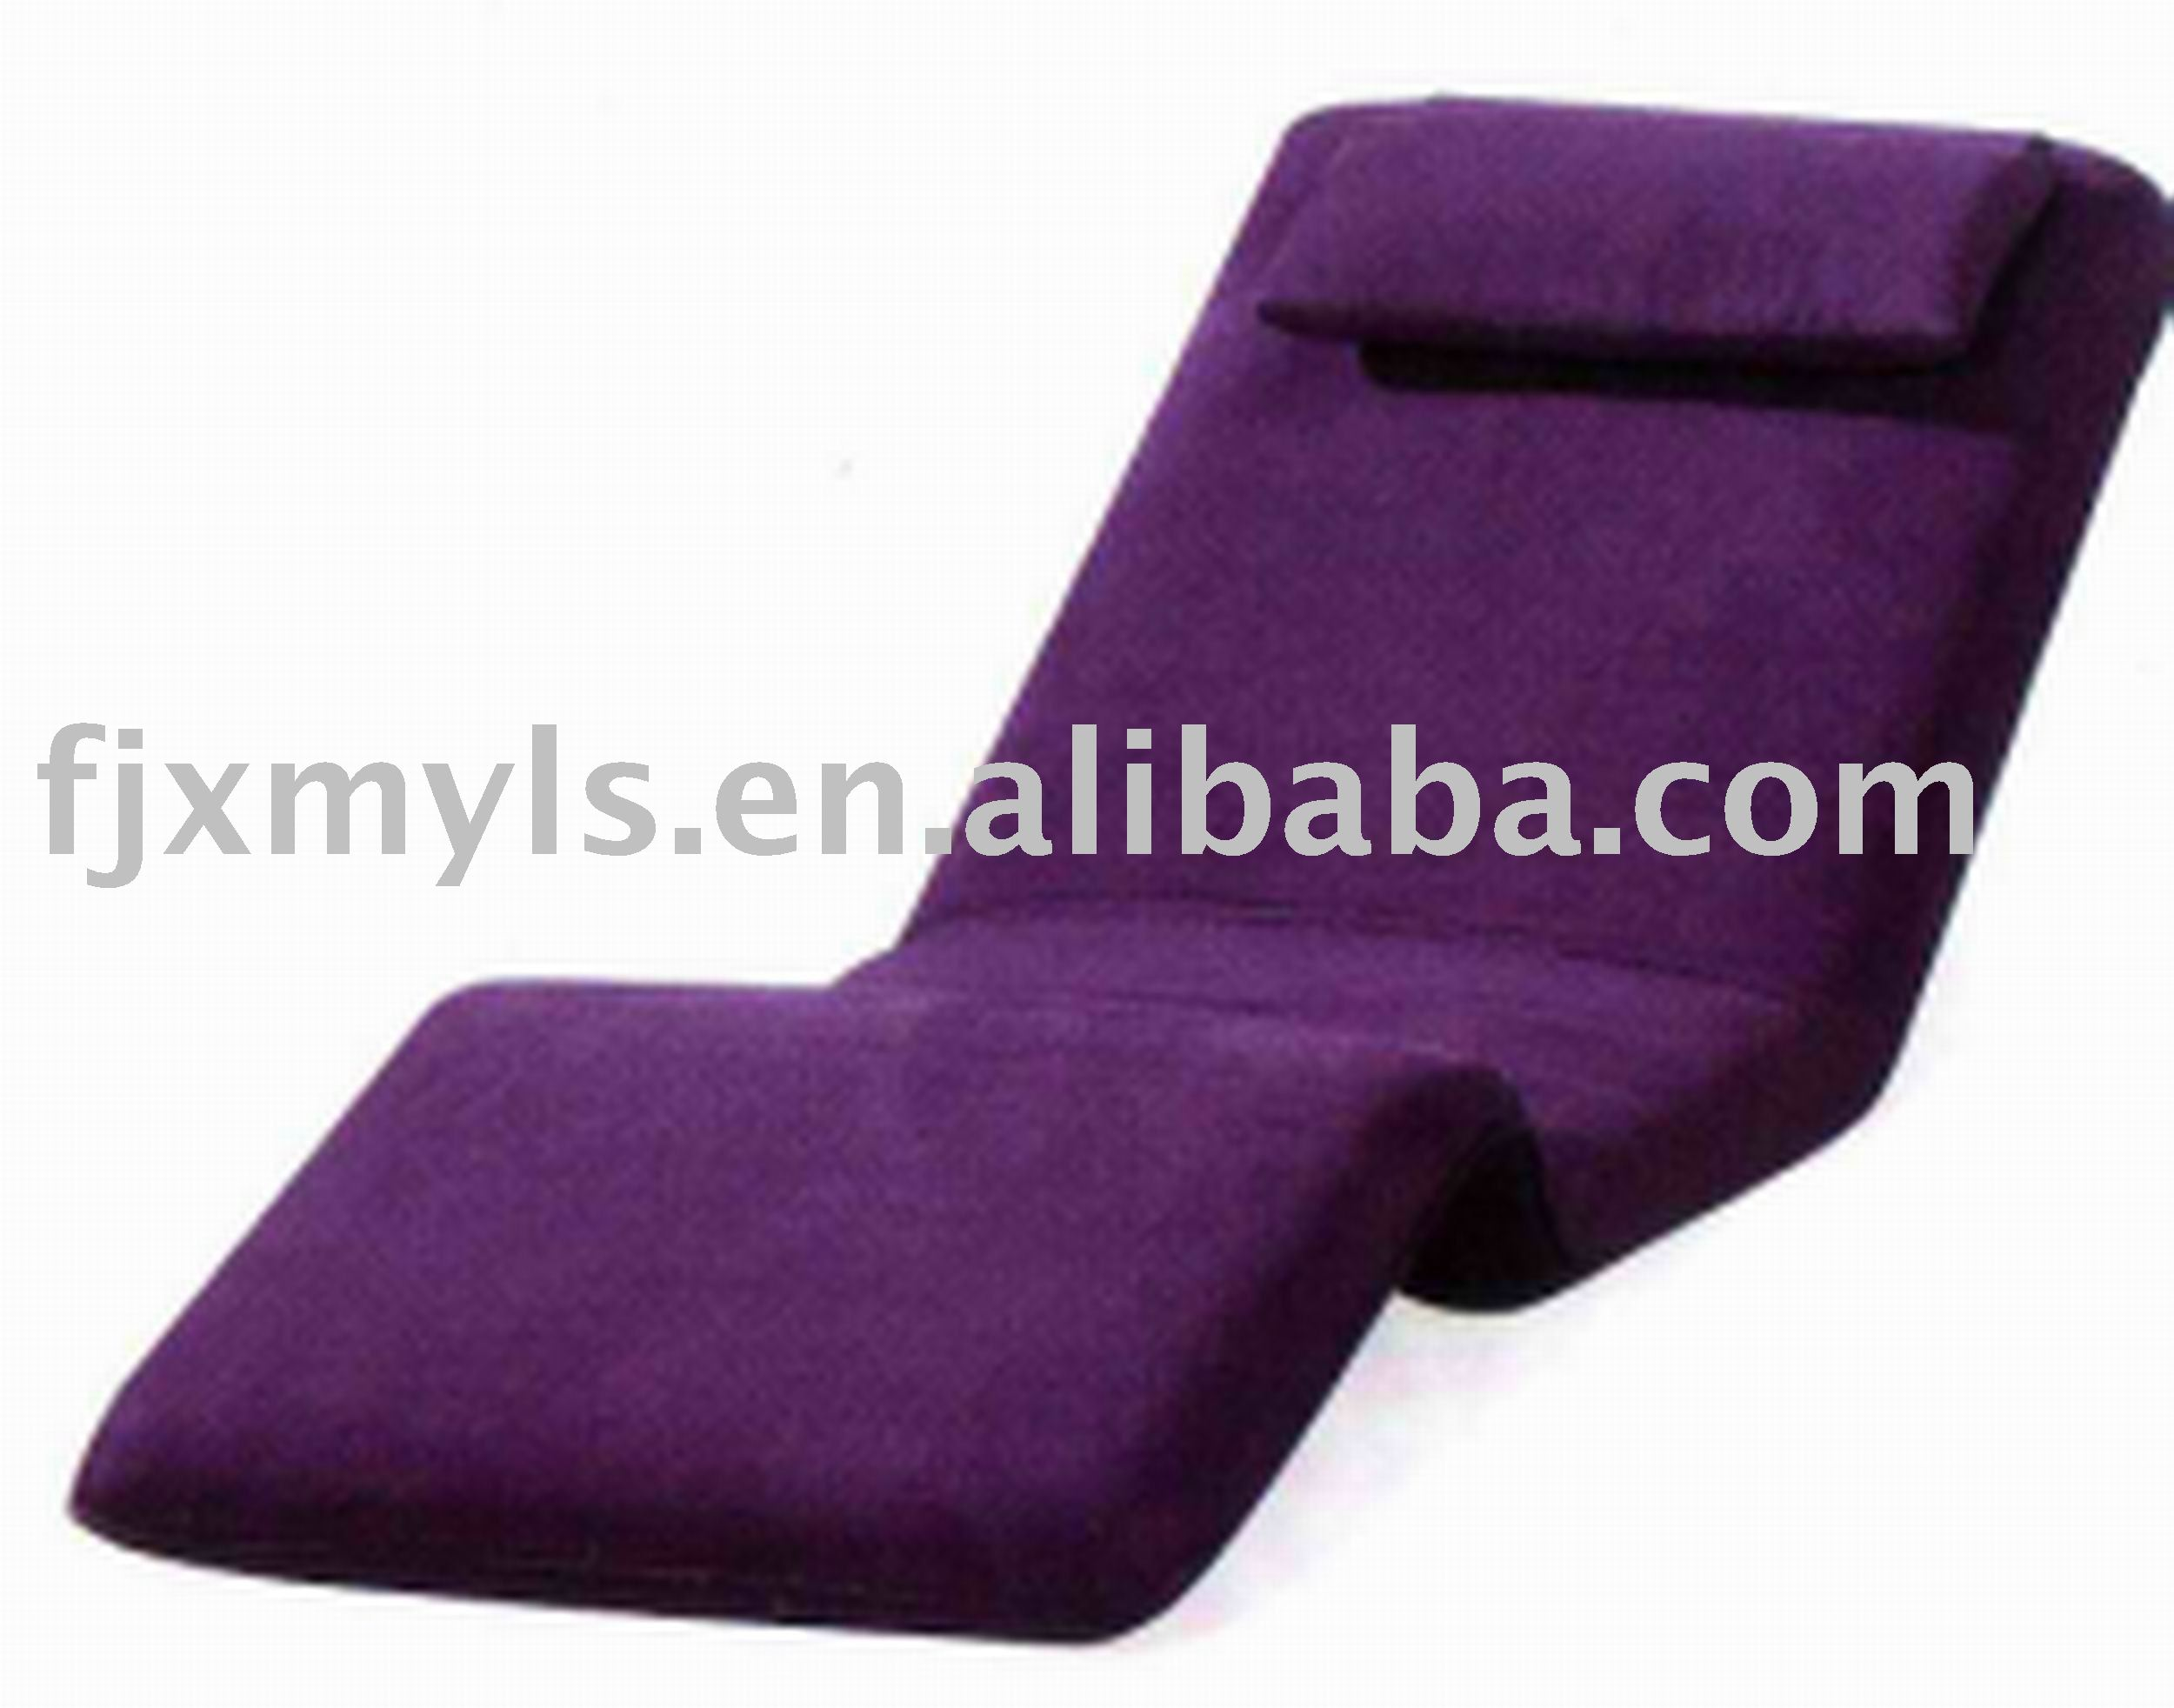 Cute Sofa Bed Cute Sofa Bed Suppliers and Manufacturers at